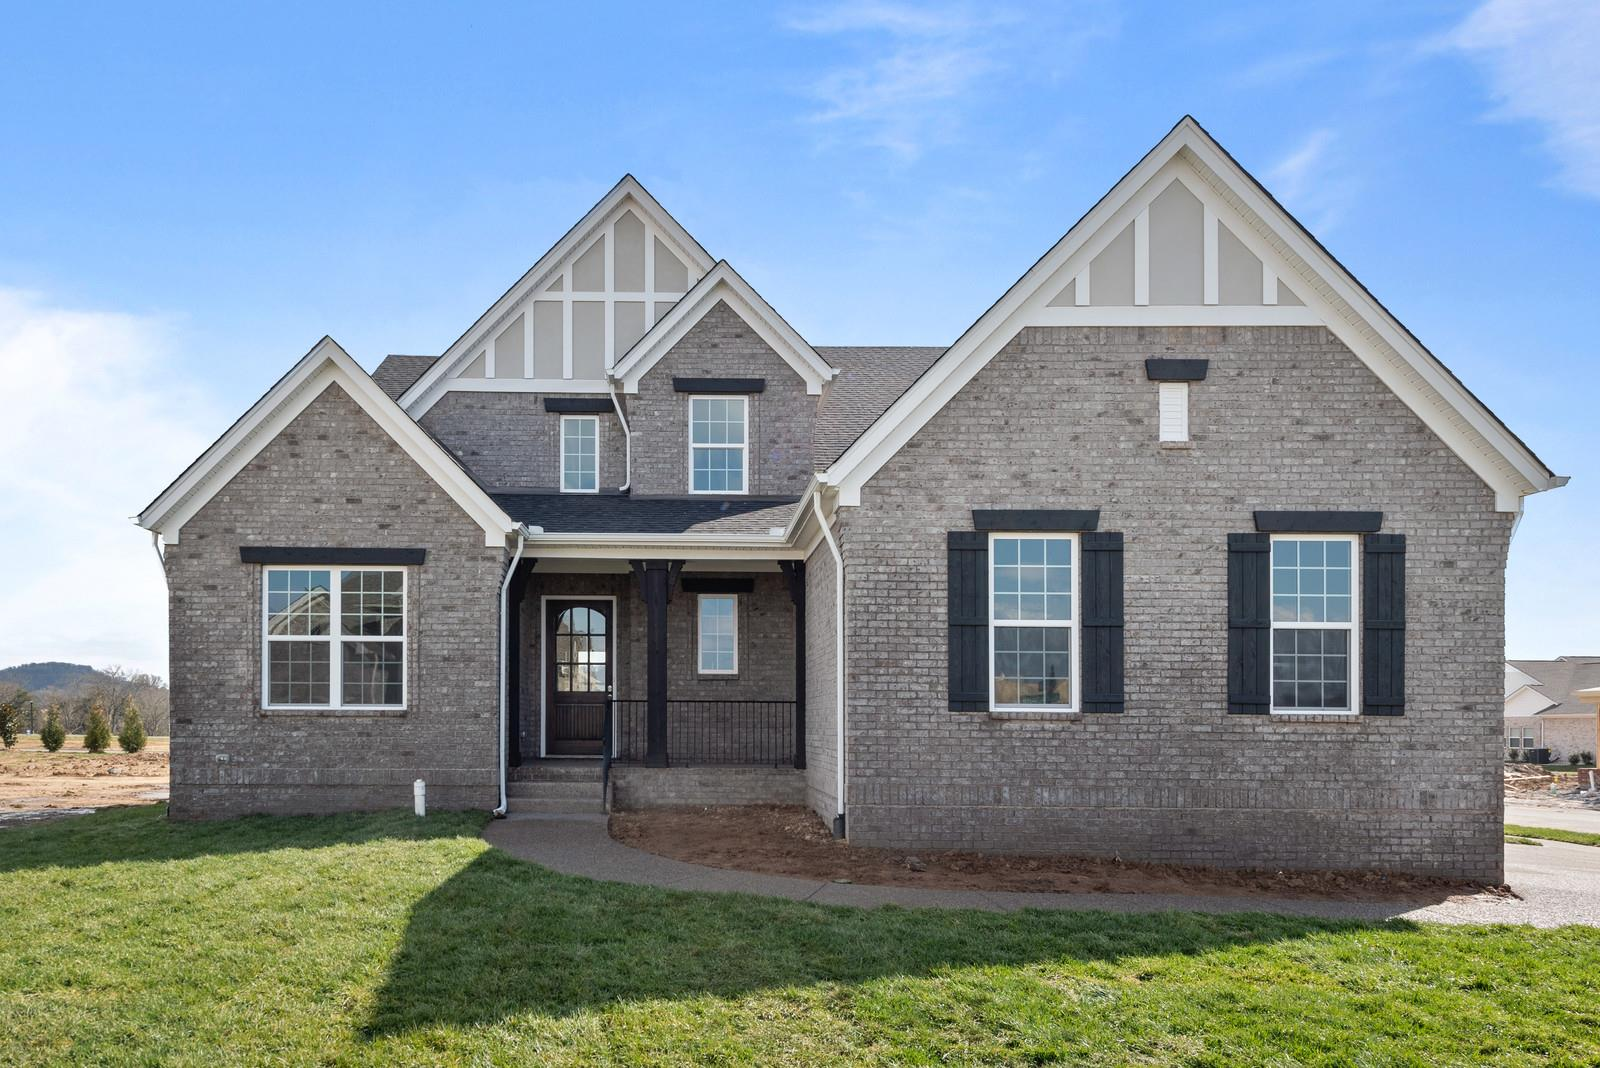 2303 Dugan Drive, Lot 133, Nolensville in Williamson County County, TN 37135 Home for Sale